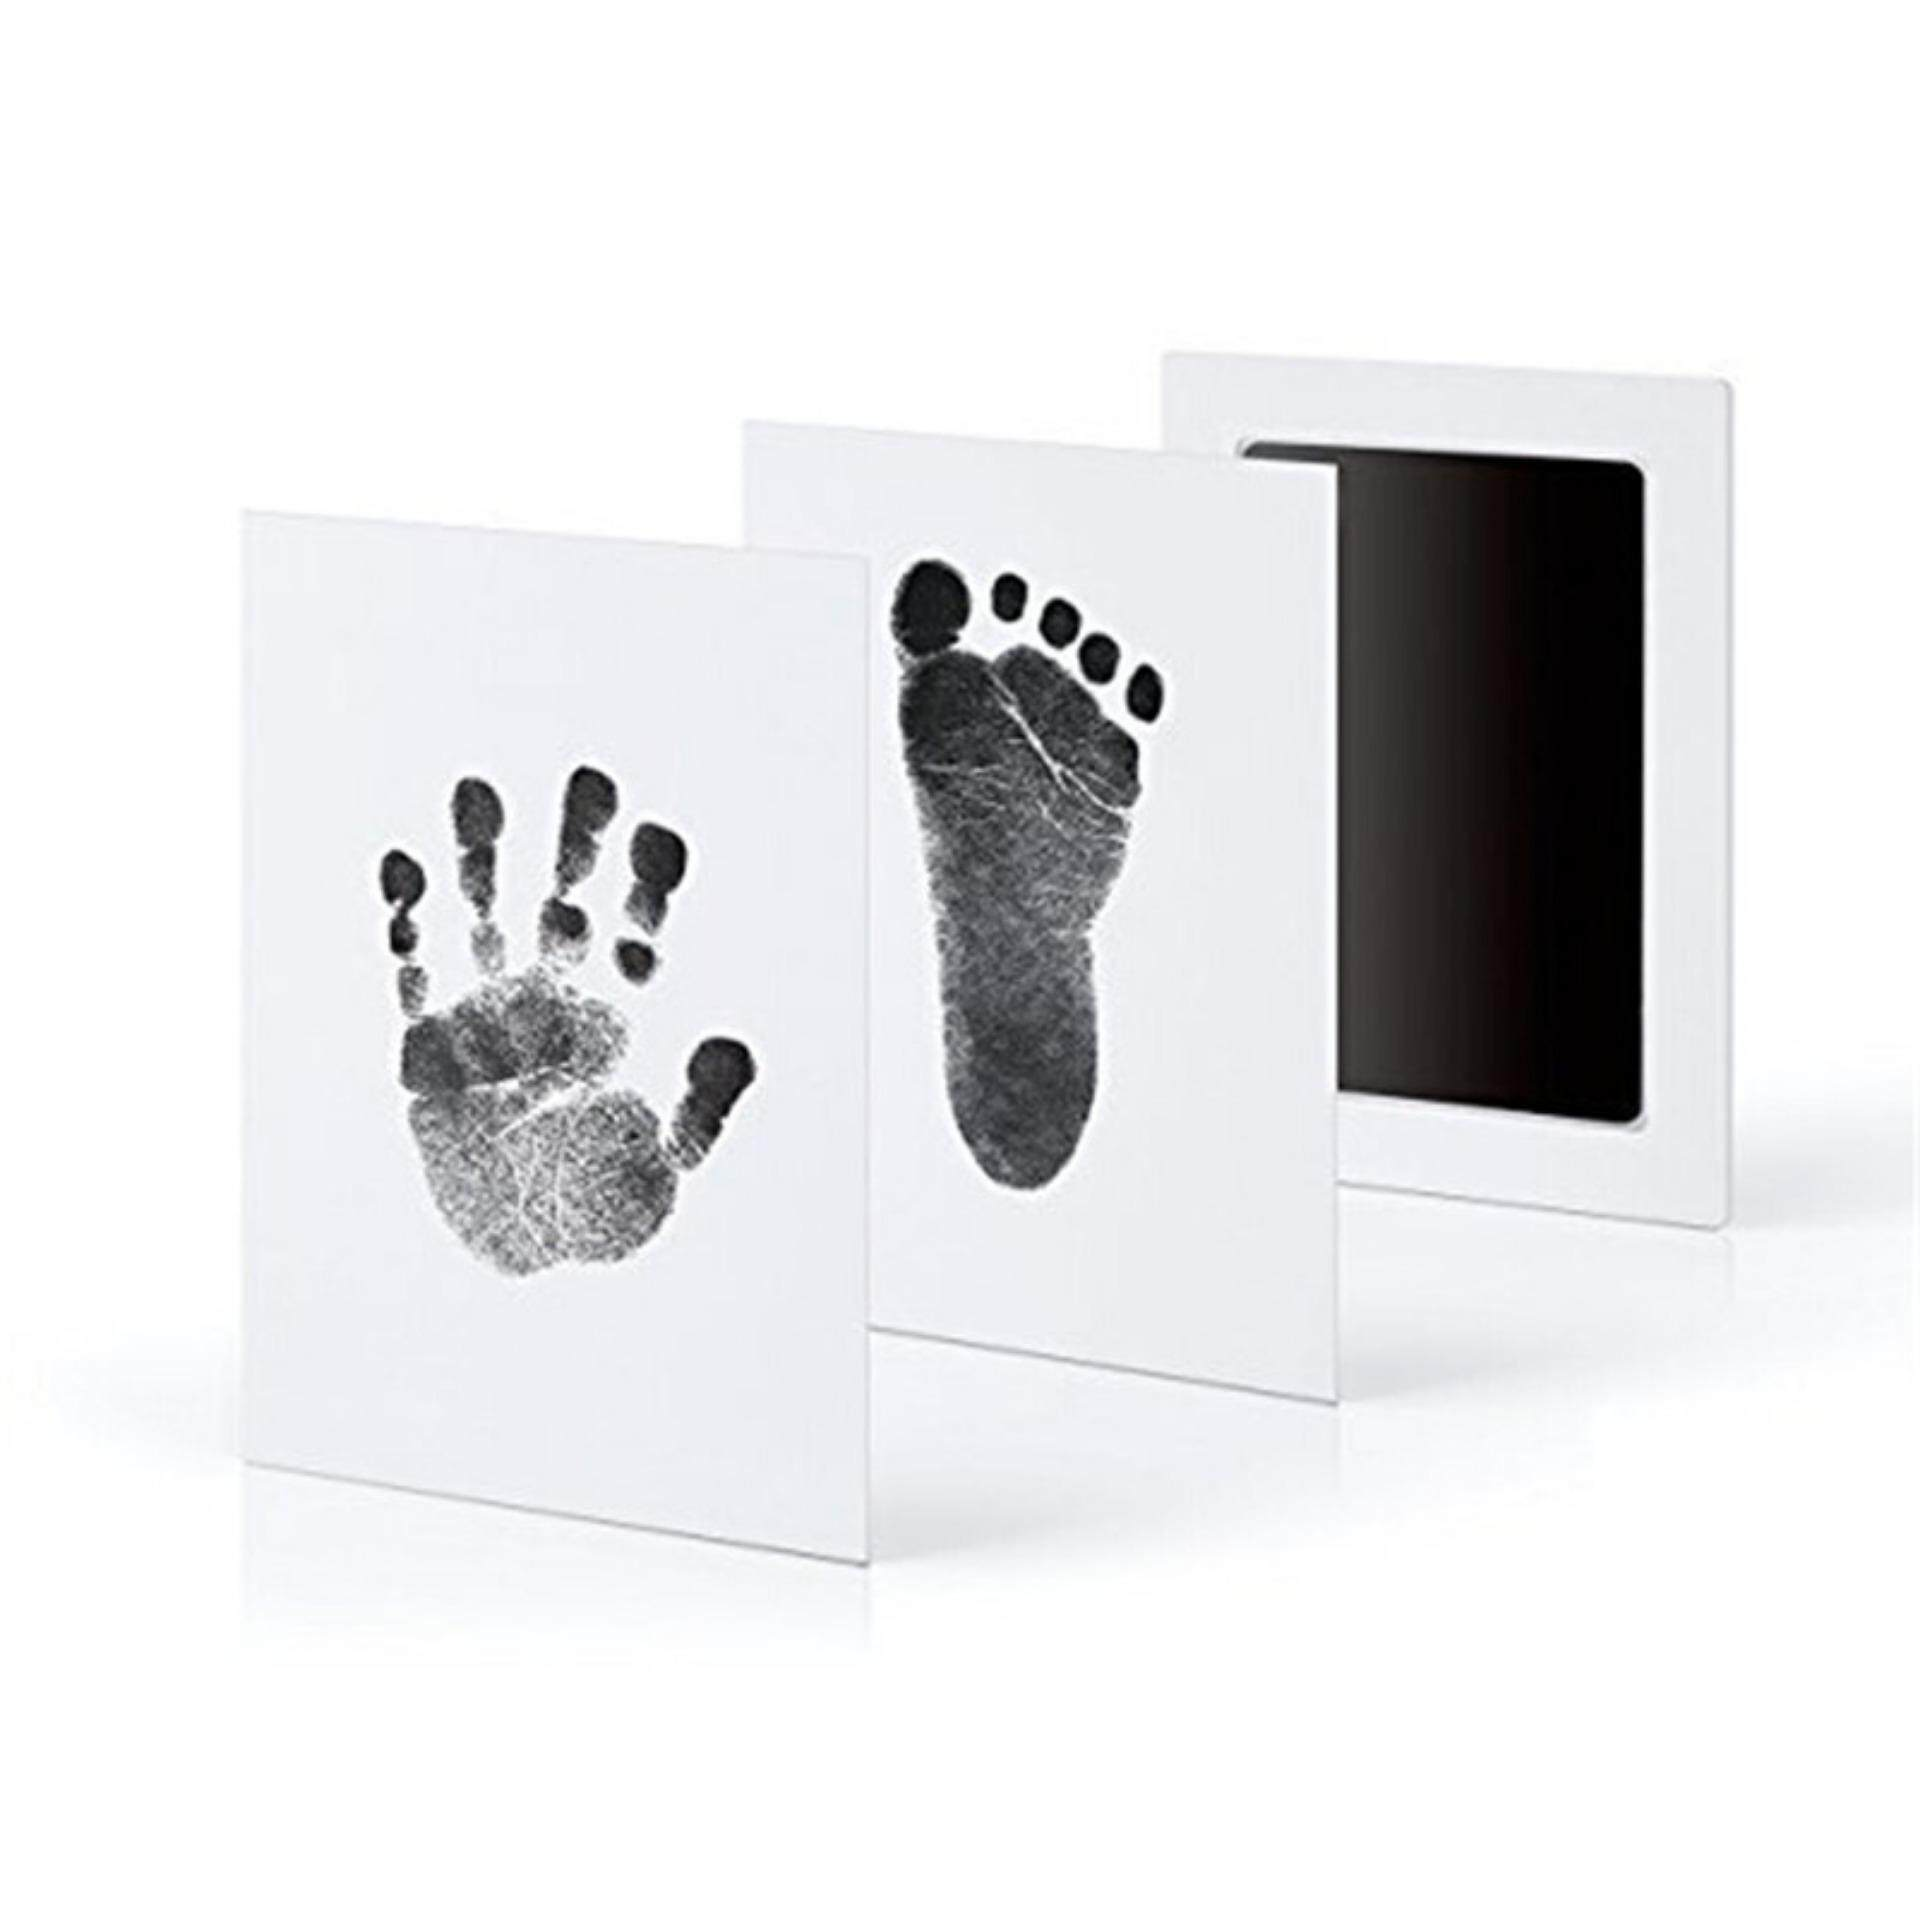 Extra Large Baby Safe Clean Inkless Touchfootprint And Handprint Ink Pad Black By Lofty White.